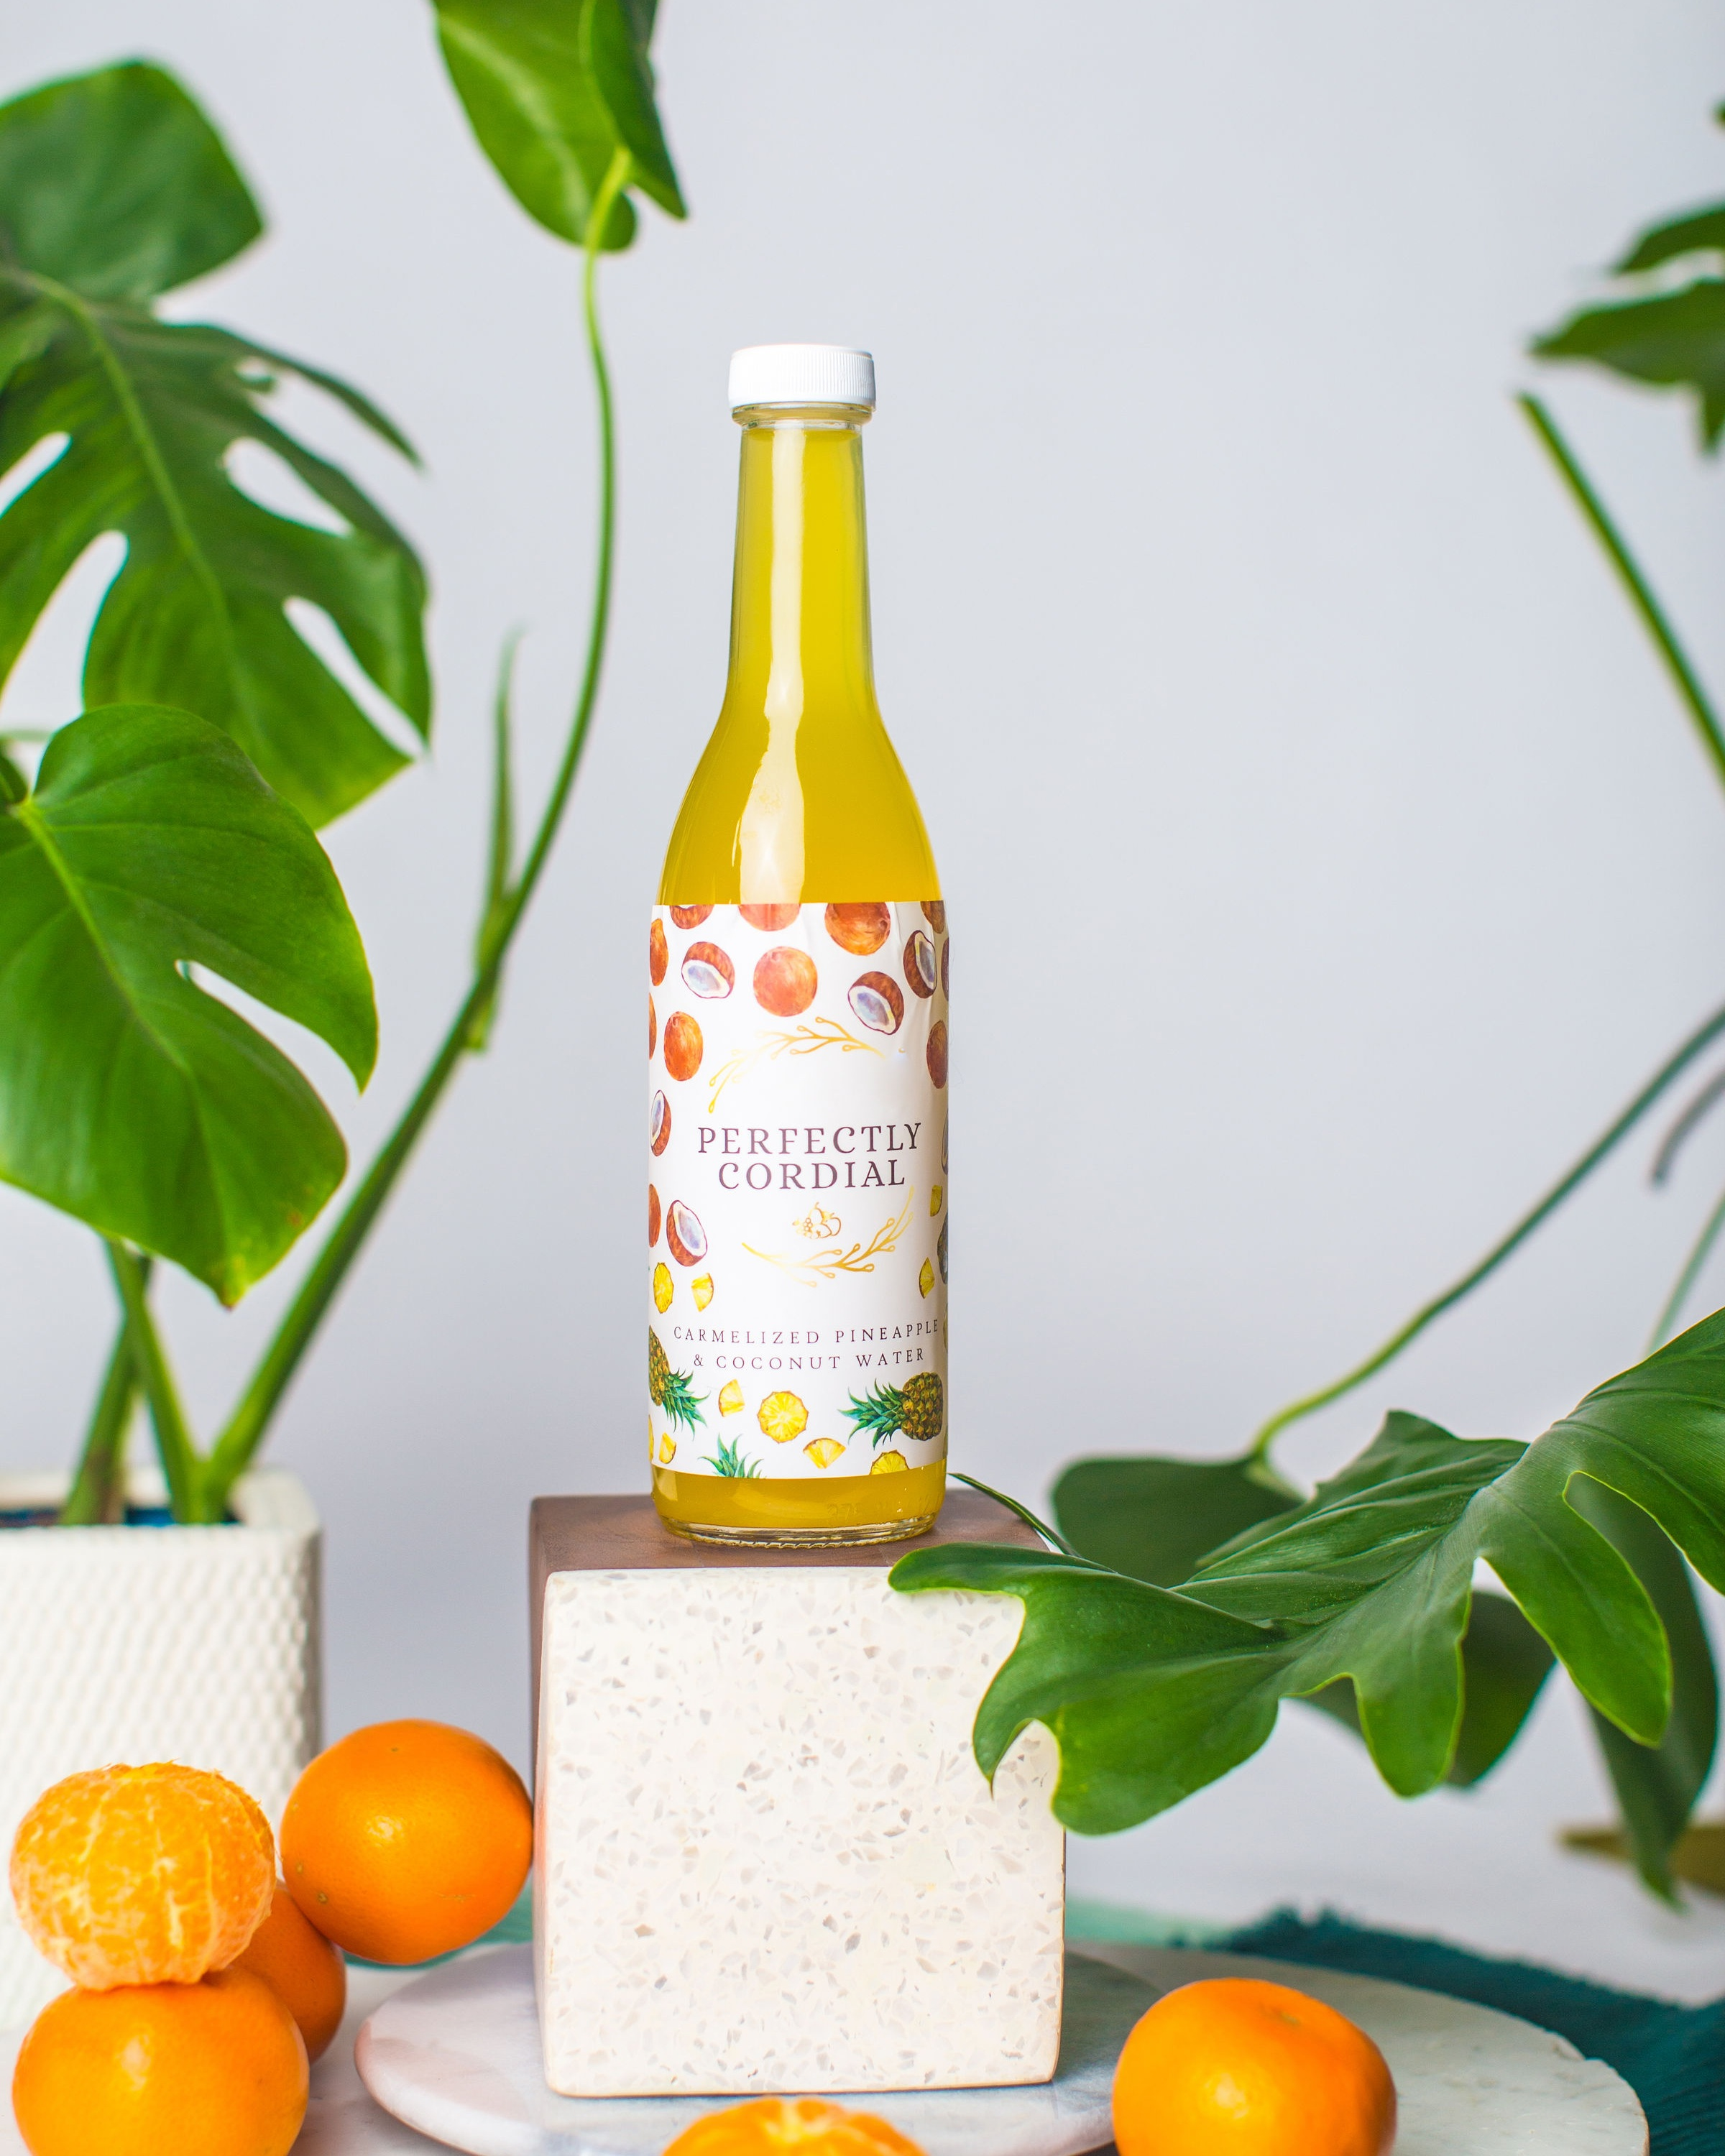 Caramelized Pineapple Coconut - Caramelized Pineapple Coconut or the soft sibling of Pina Colada: a combination of caramelized pineapples, fresh pineapple juice, coconut water, lemon juice, exotic spices and cane sugar.From $14.99-$7.00